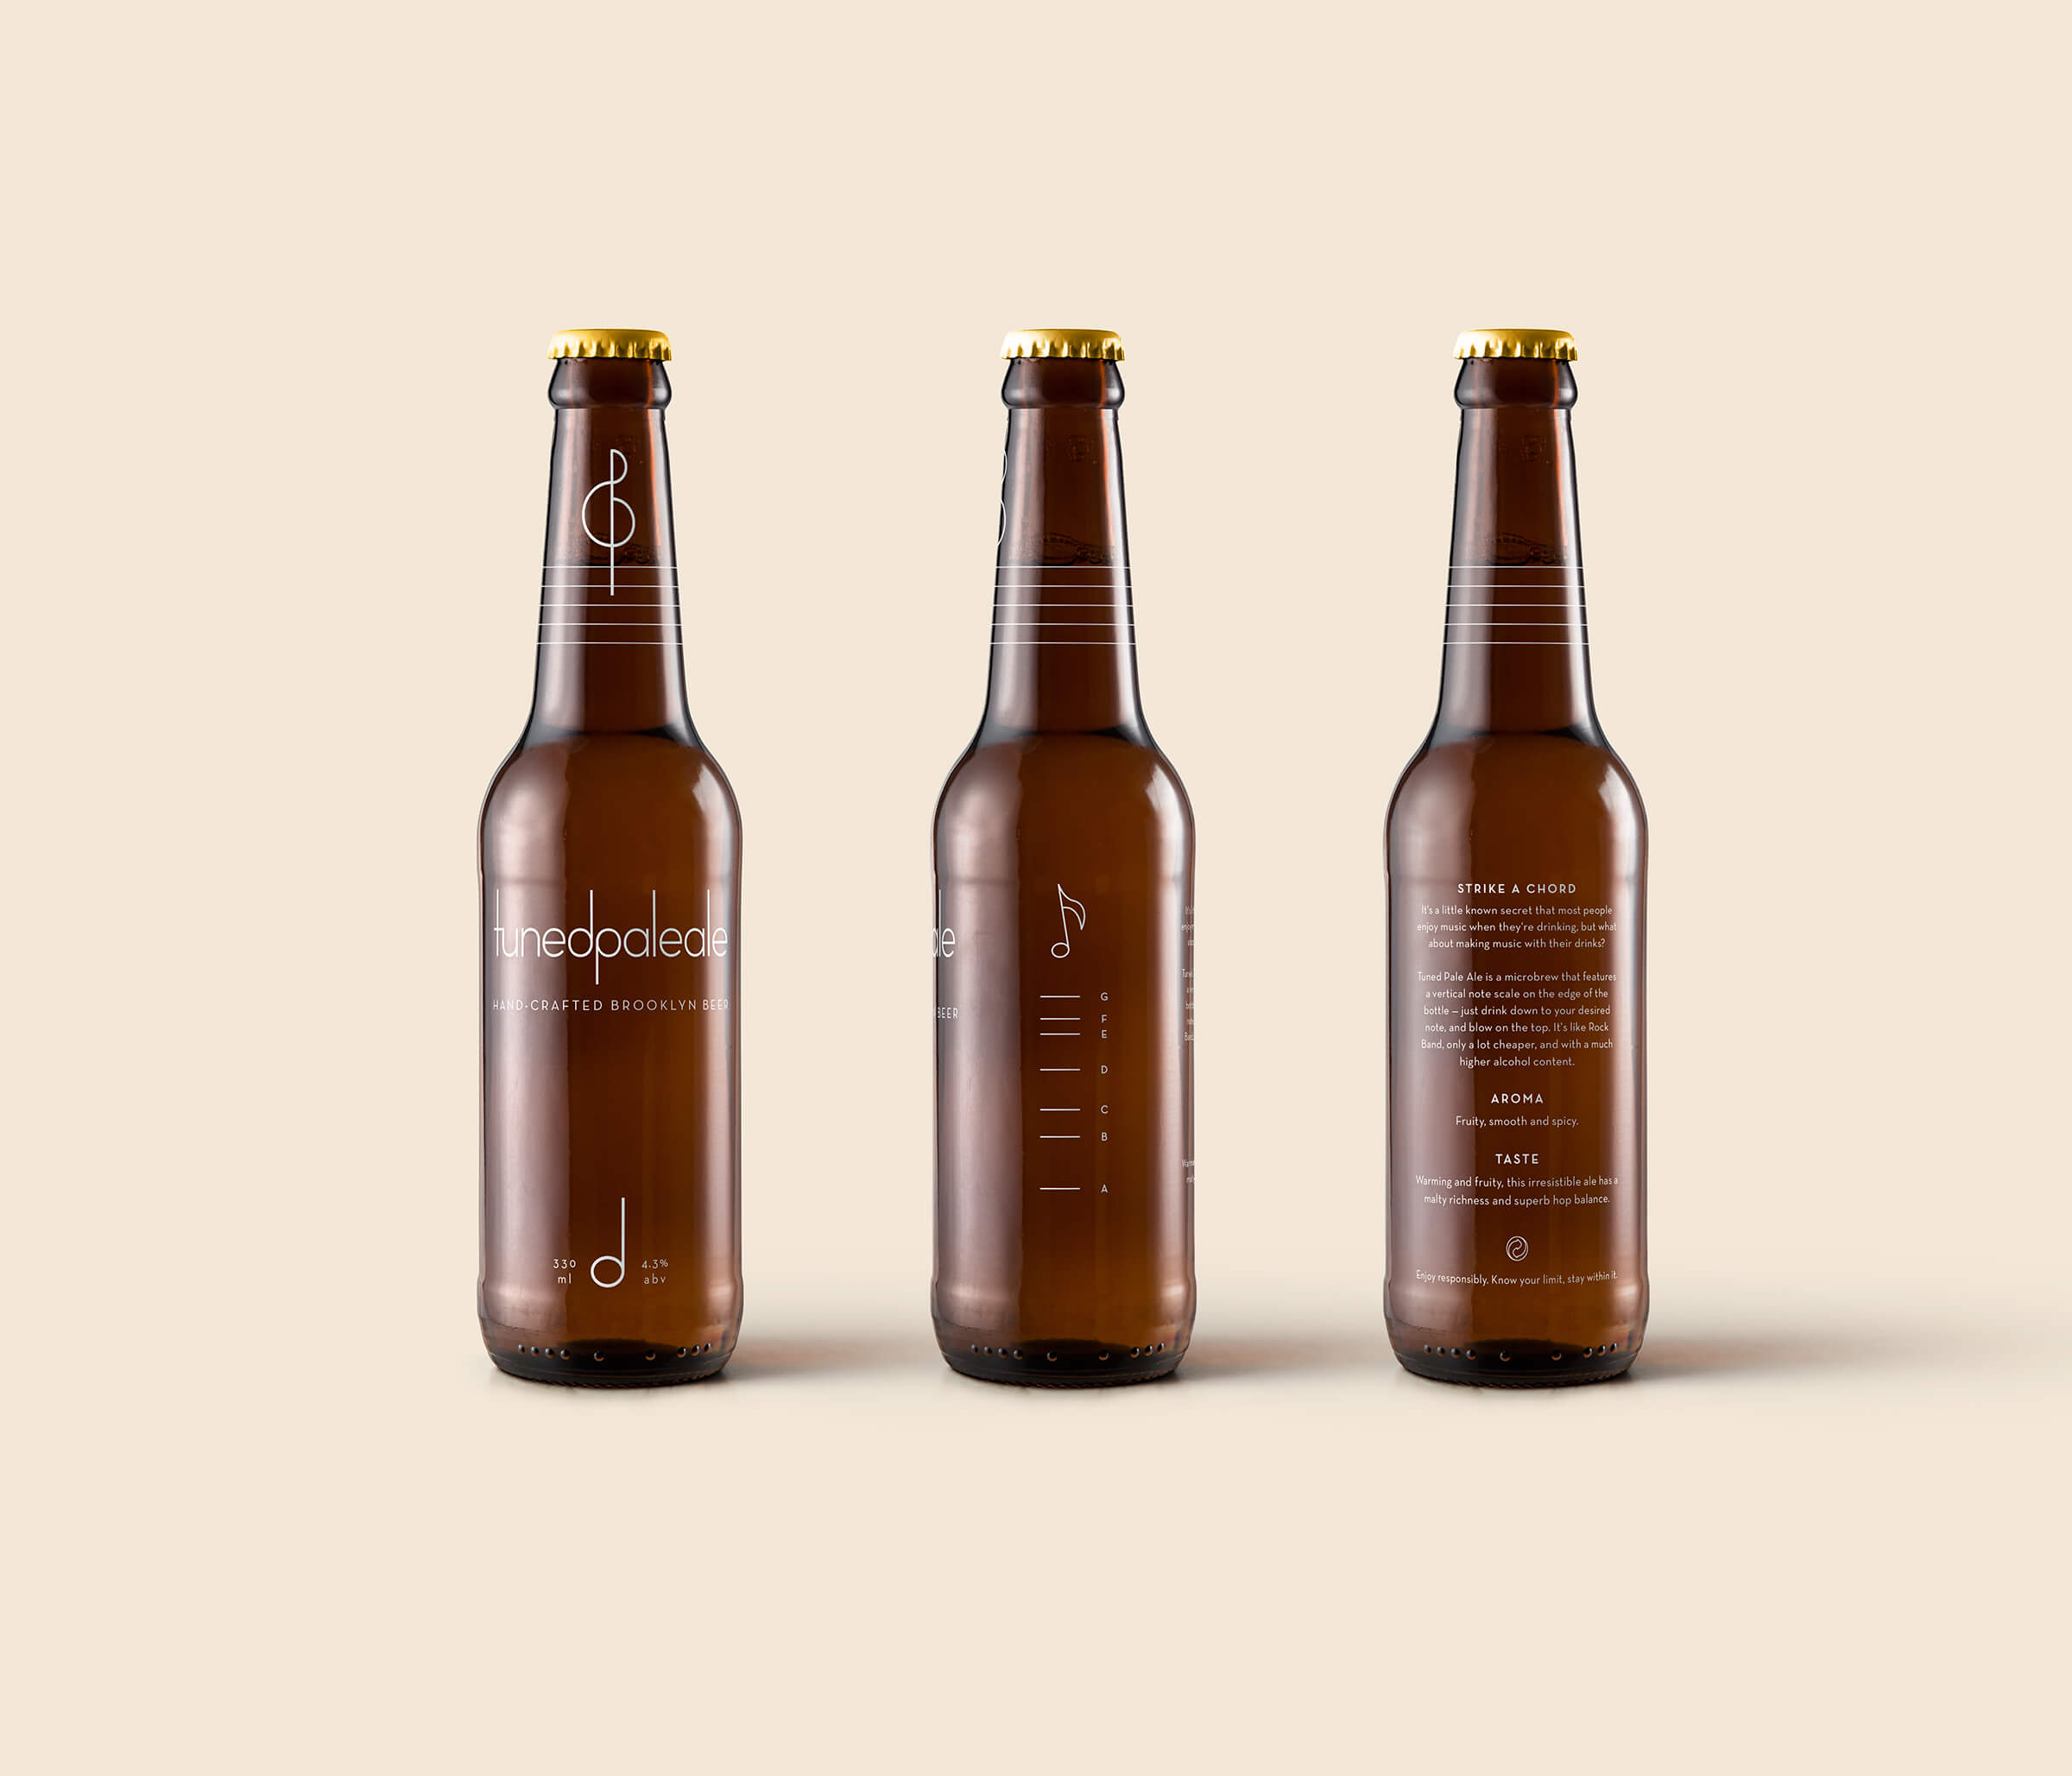 Tuned Pale Ale Bottle